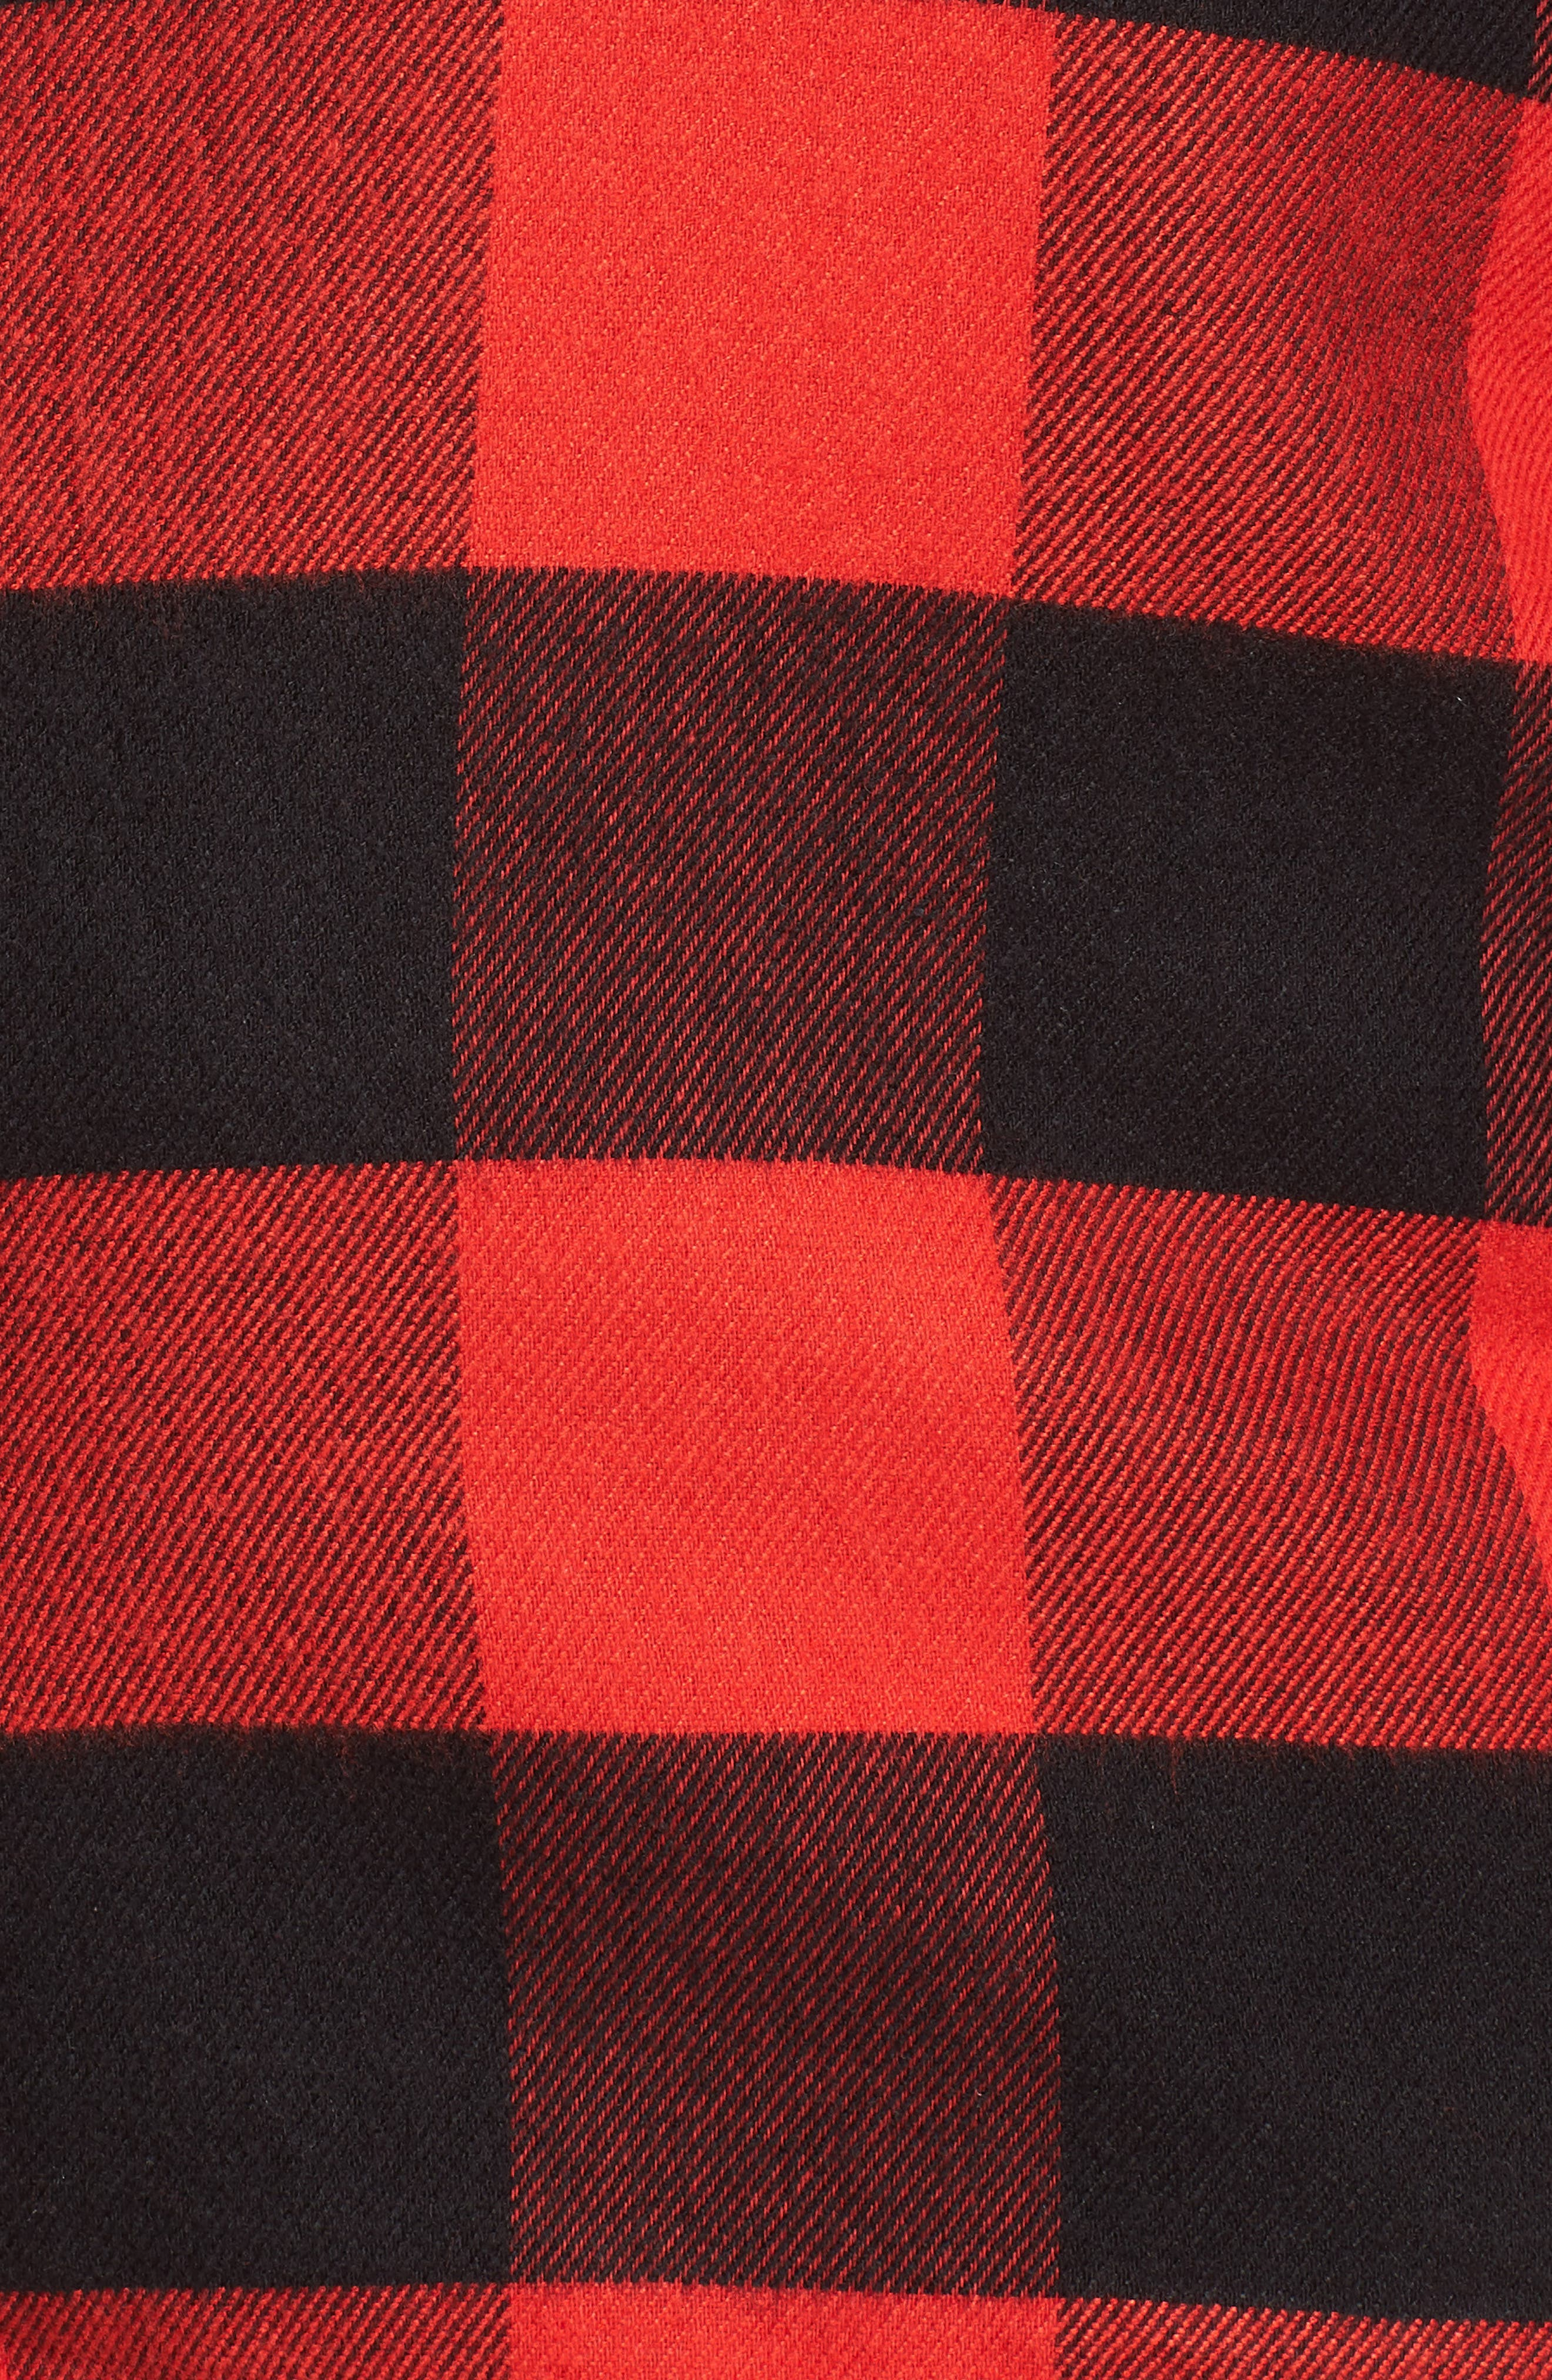 Starlight Plaid Flannel Pajamas,                             Alternate thumbnail 5, color,                             RED BLOOM LARGE BUFFALO CHECK